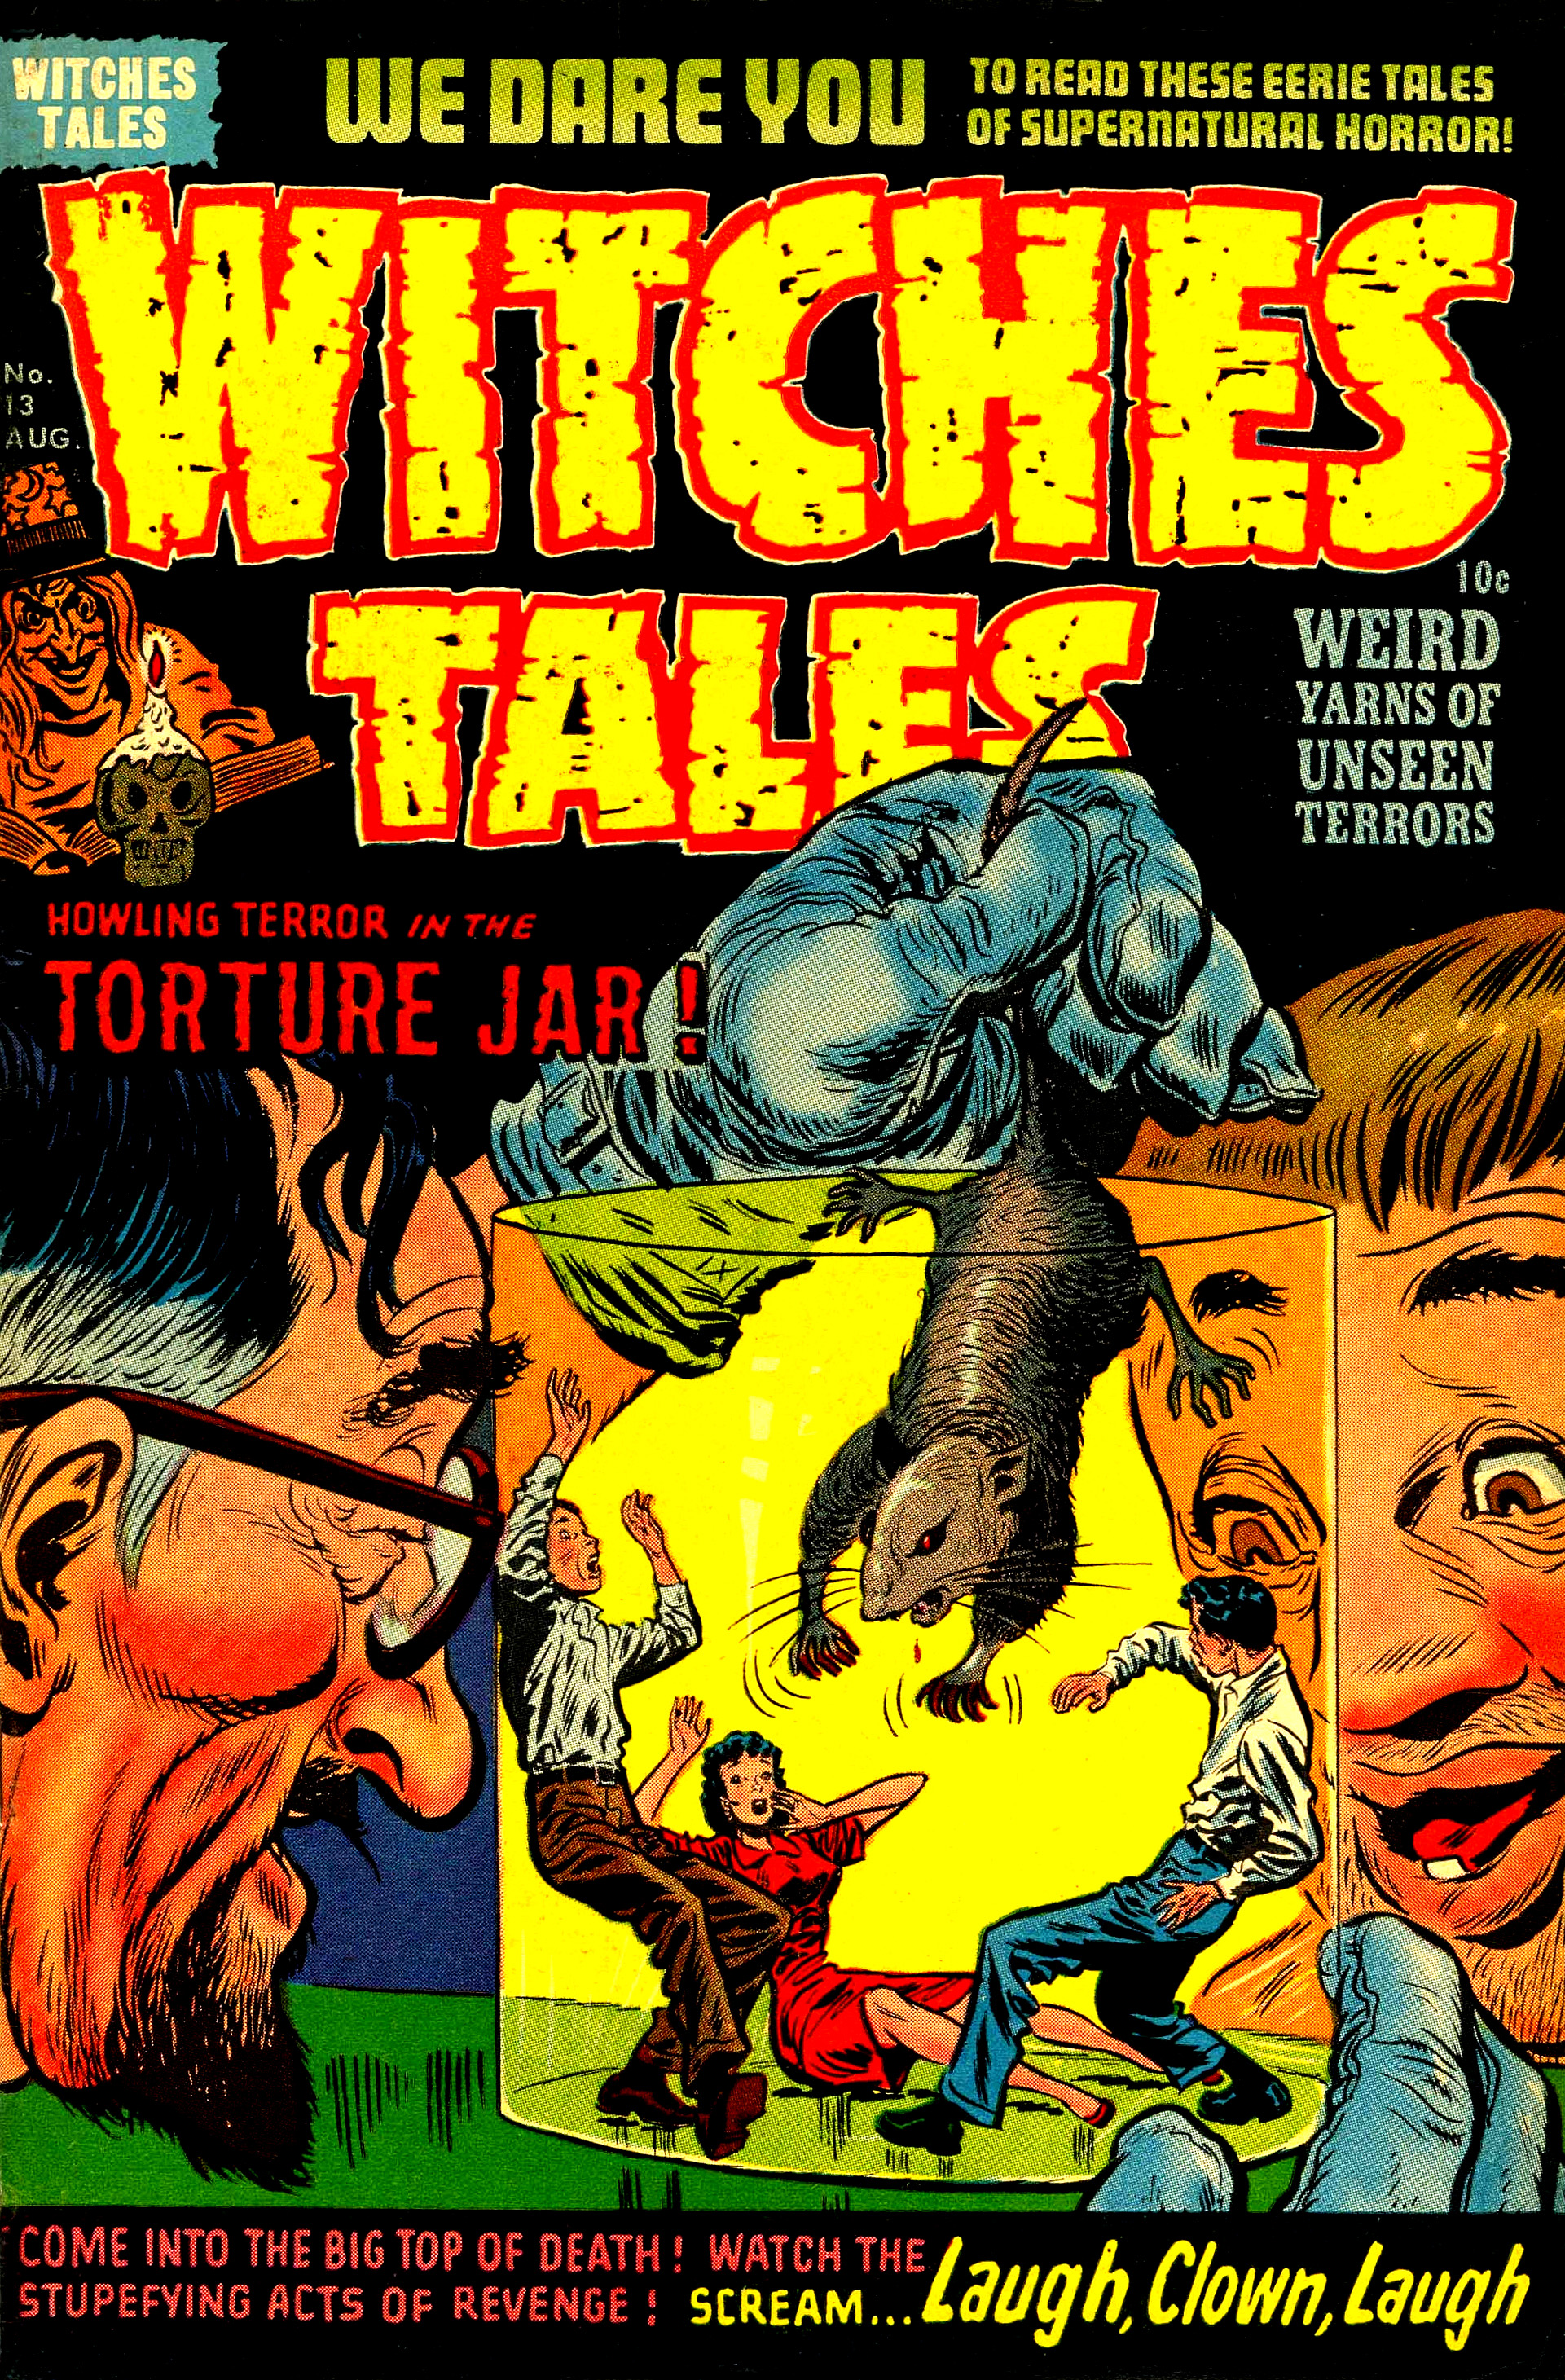 Witches Tales #13, Lee Elias Cover (Harvey, 1952)